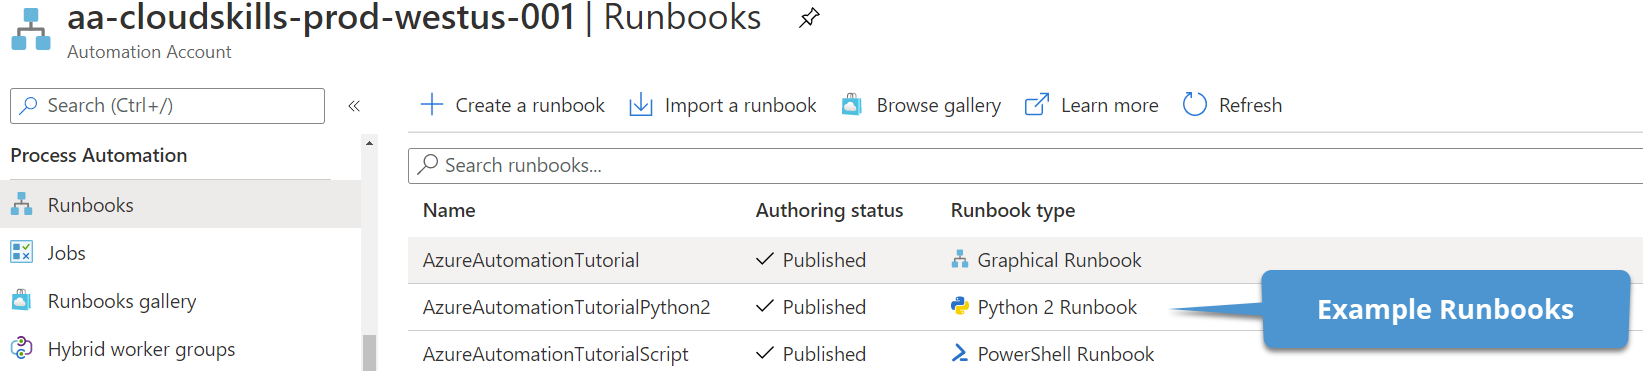 Viewing automation runbooks